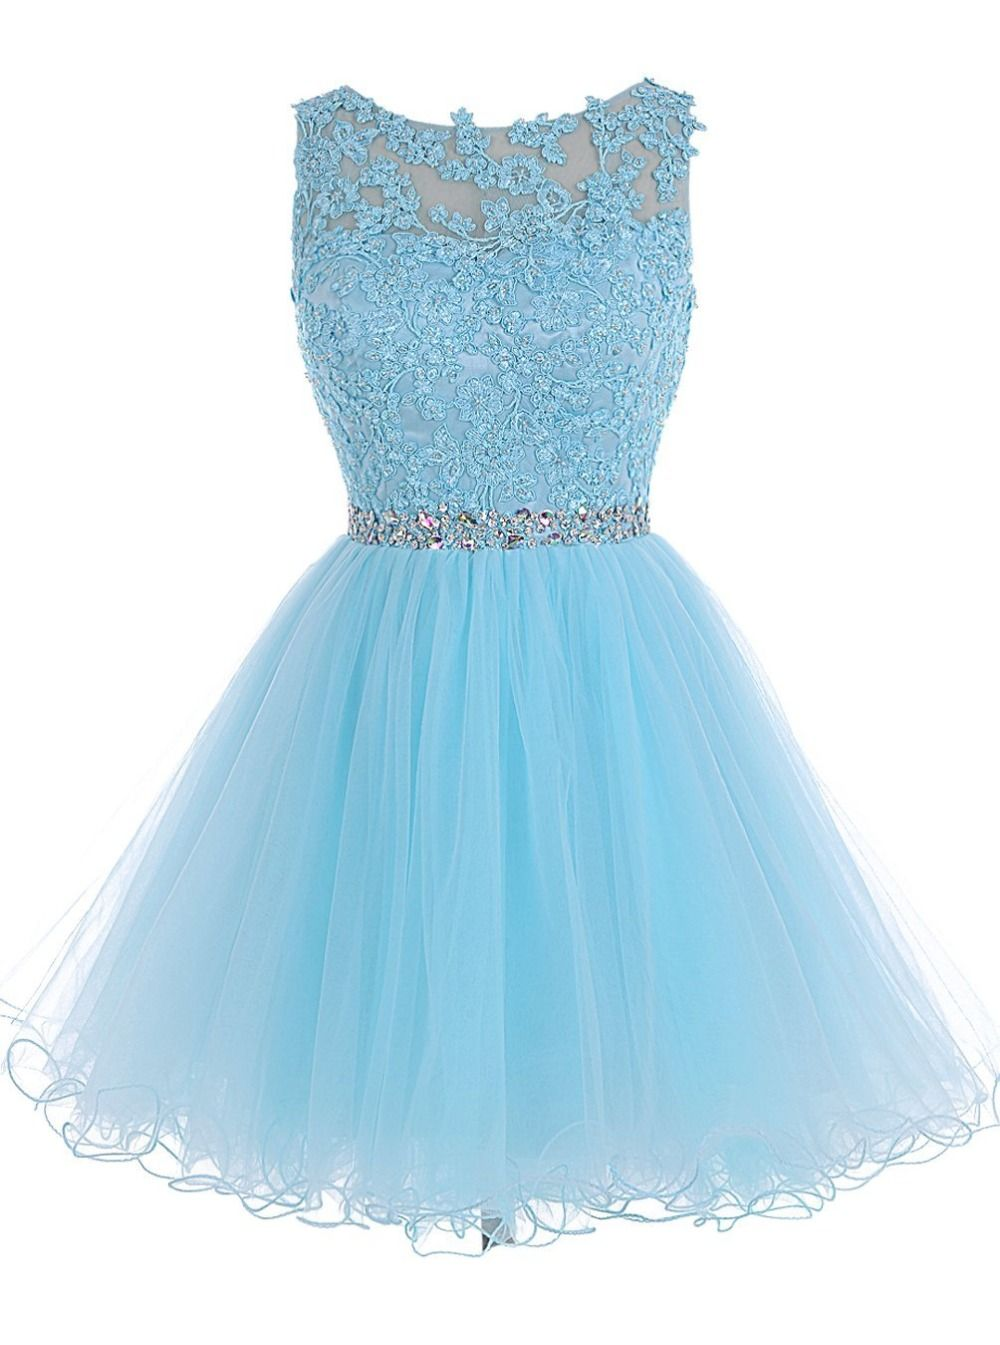 Sweet 16 Short Party Dresses Boat Neck Backless Tulle Puffy Prom ...